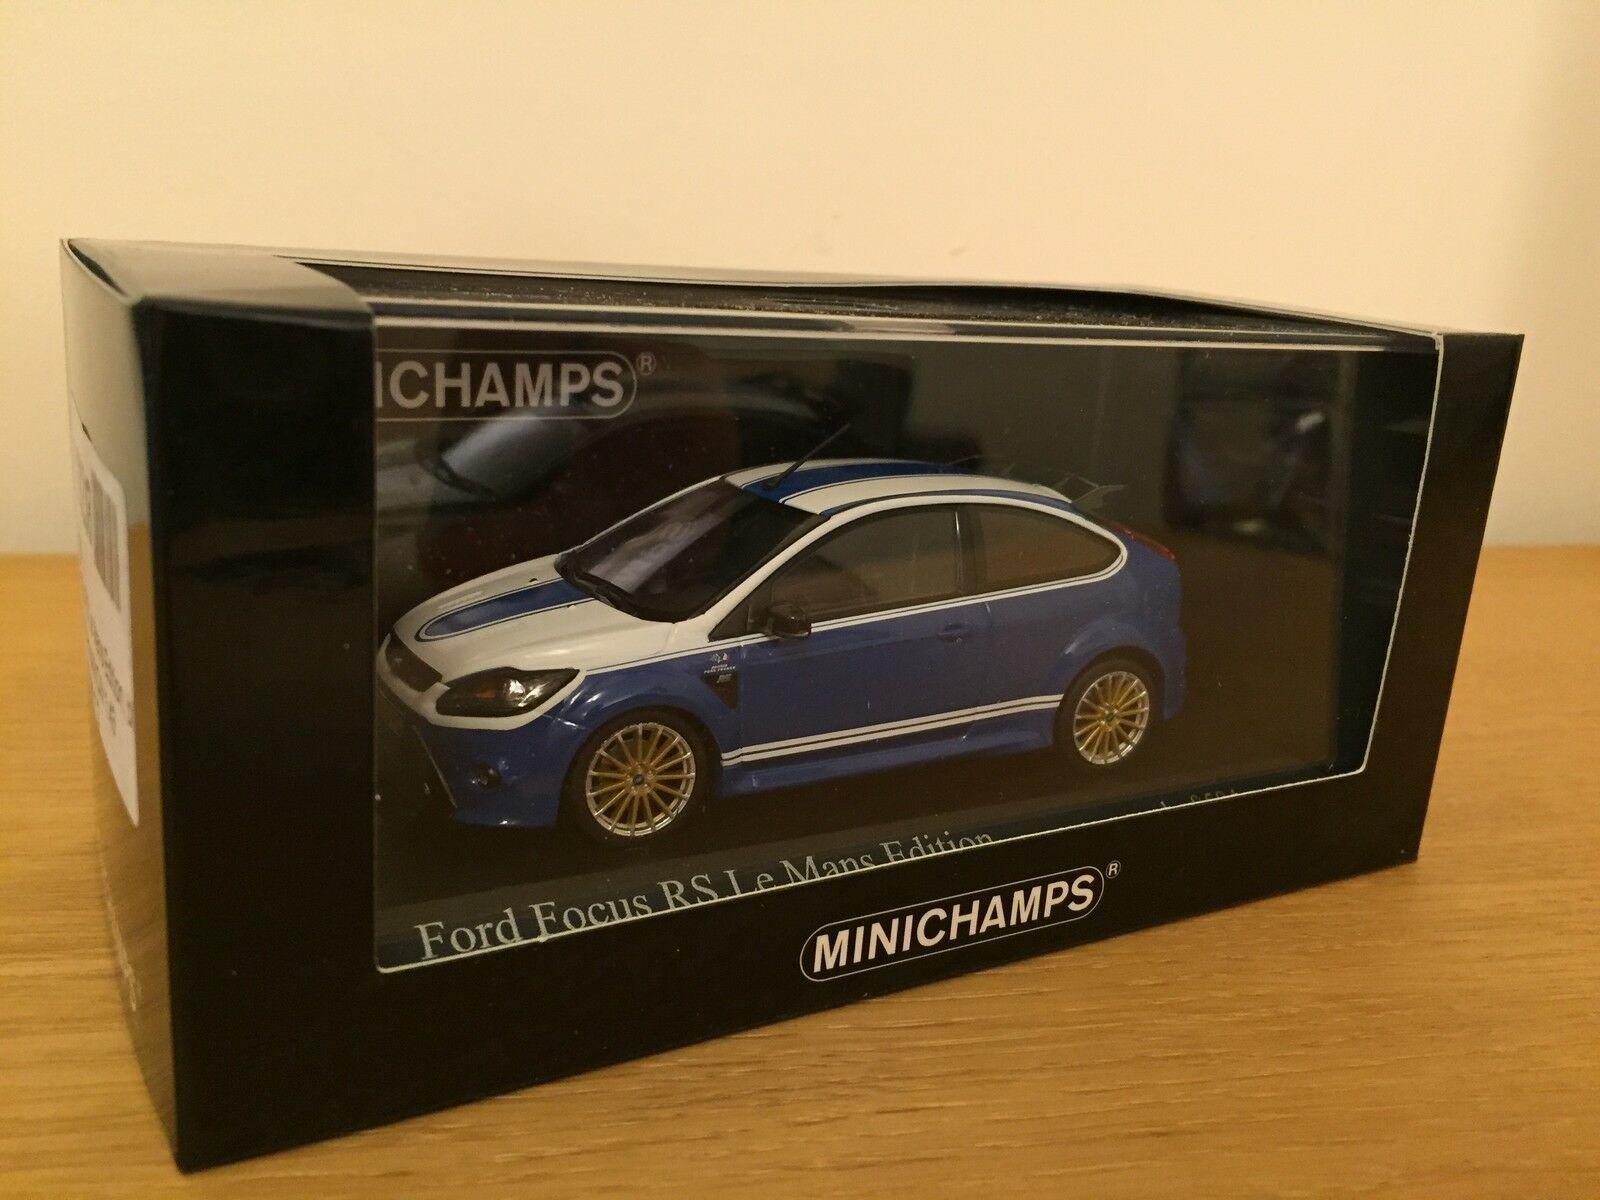 Minichamps 1 43 FORD FOCUS RS Le Mans Edition Version 1 (403 088172) VERY RARE